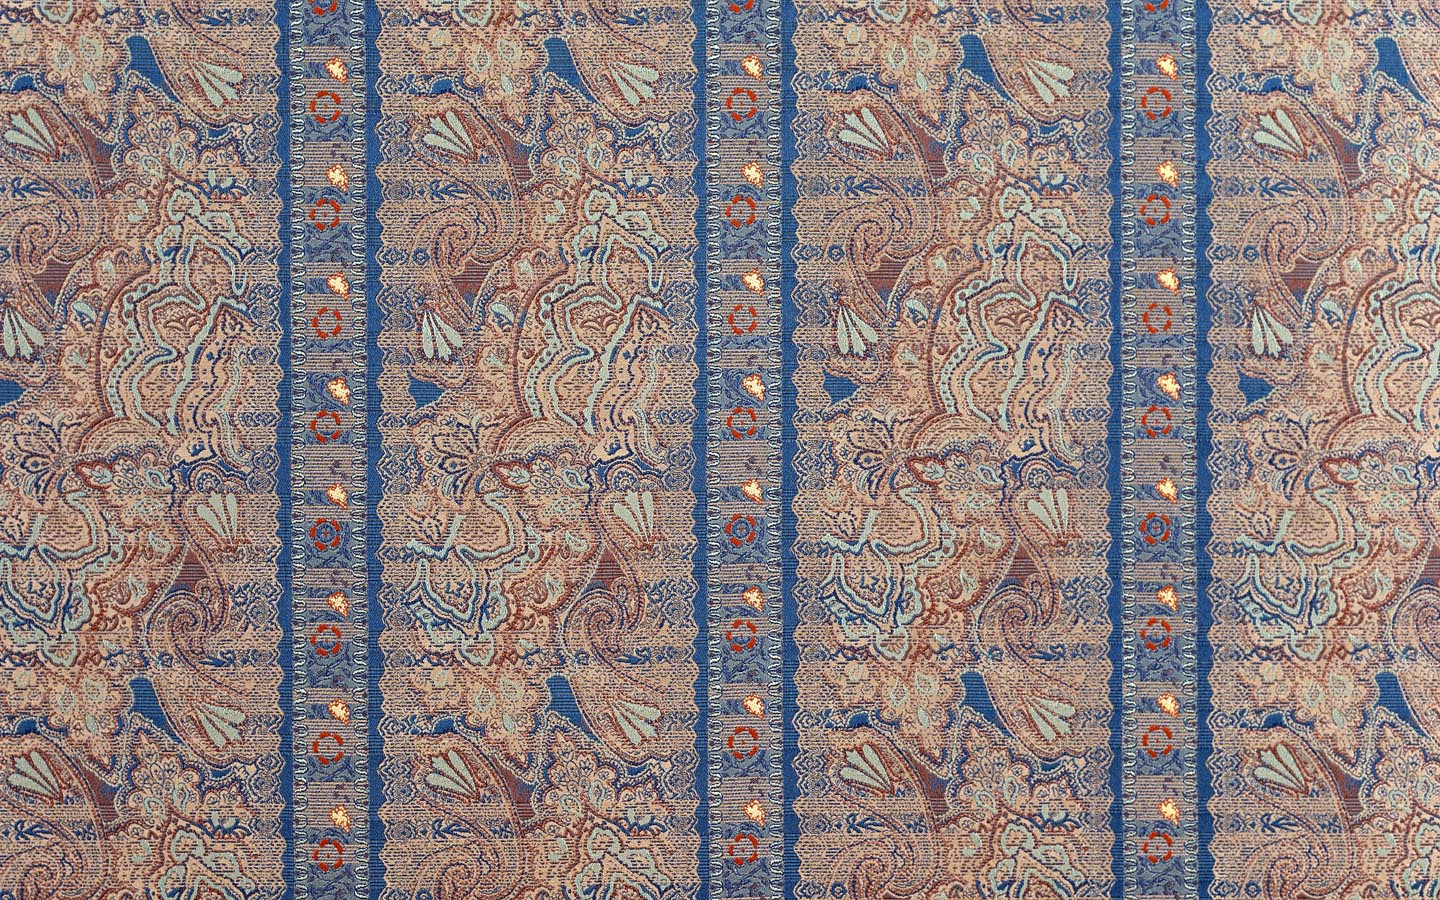 Fabric texture 13577